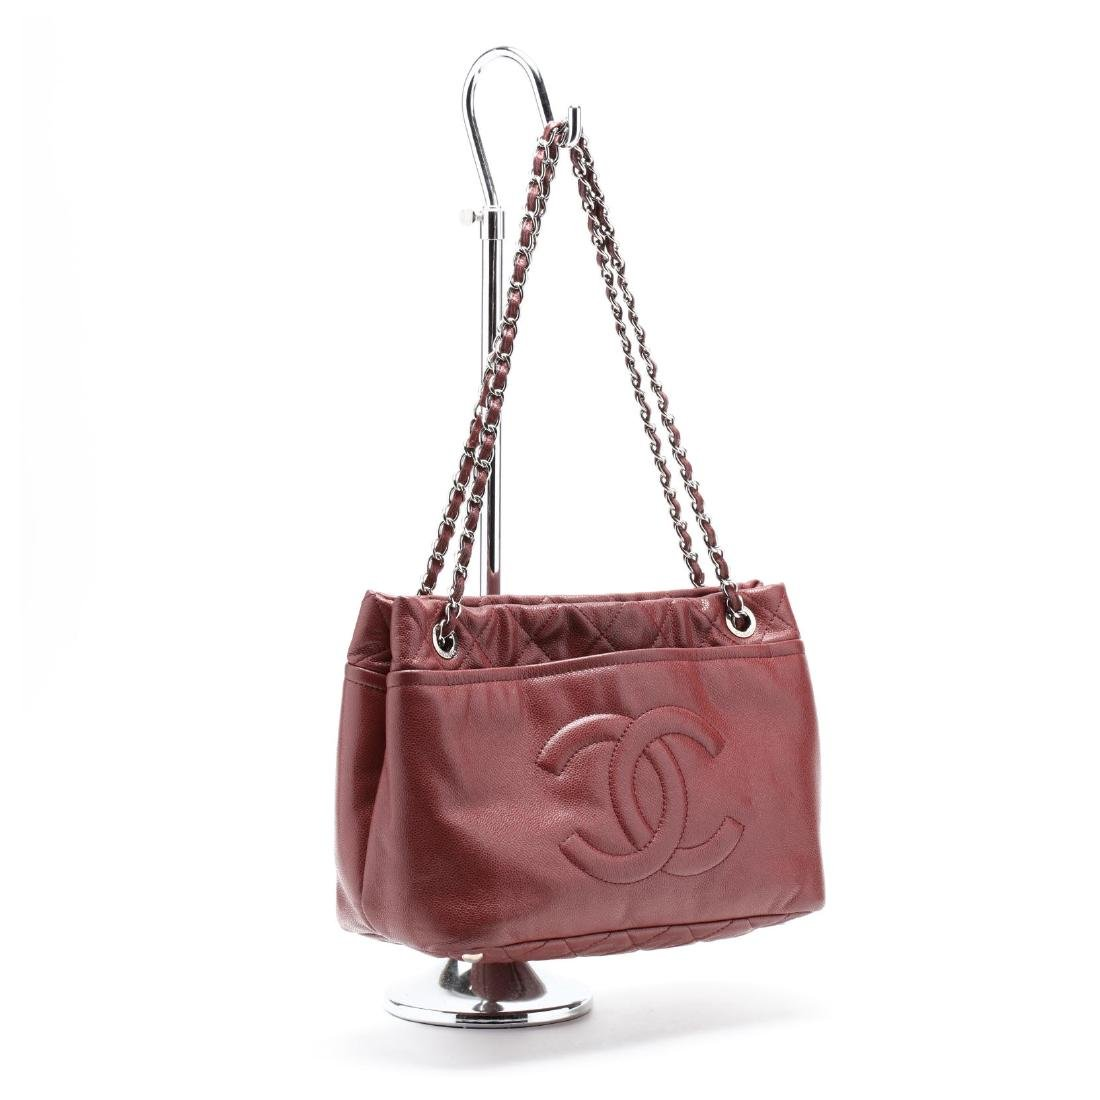 Logo Shopping Tote, Chanel